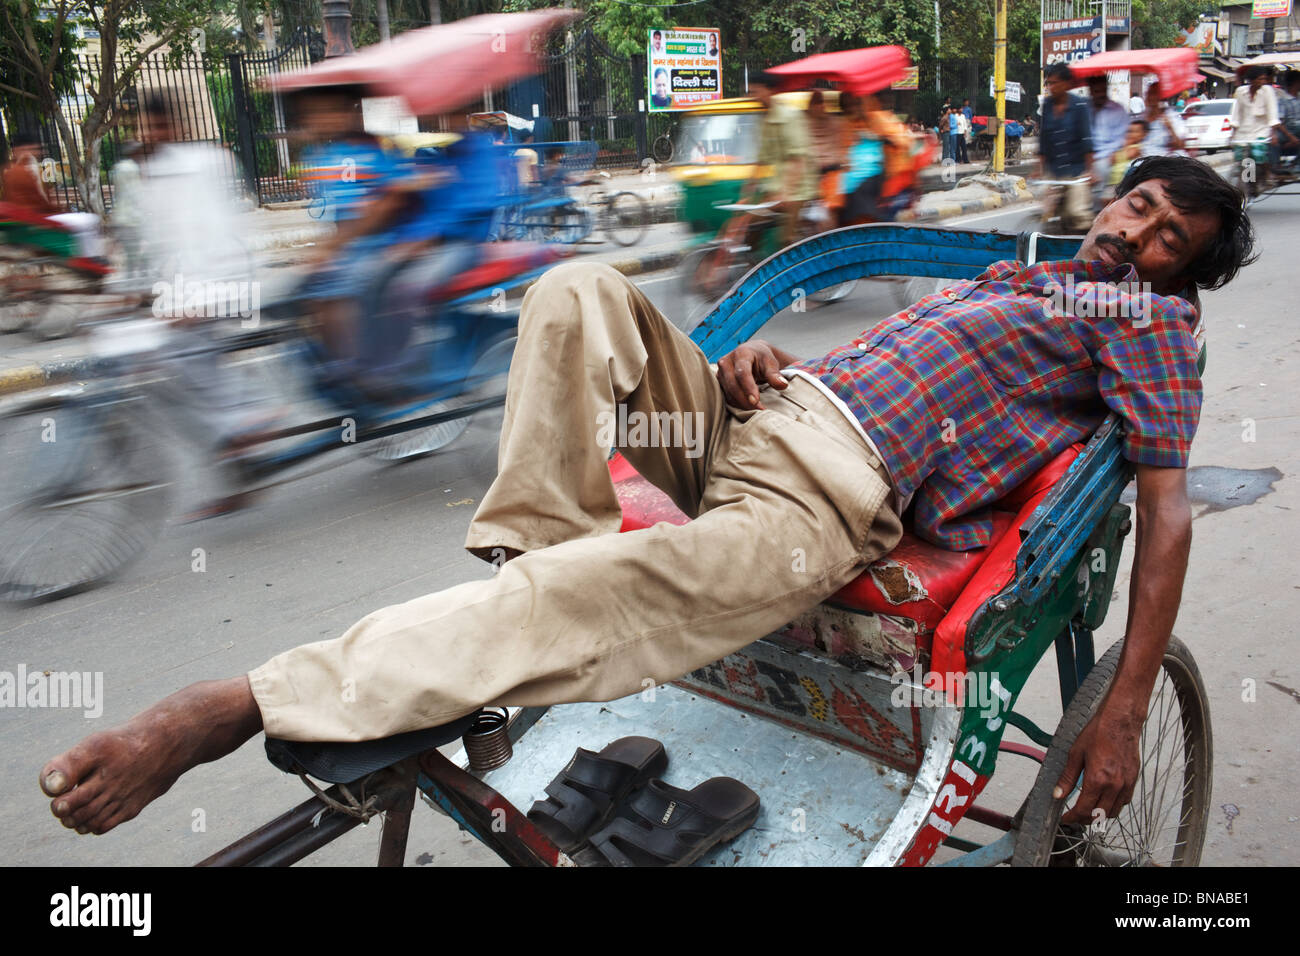 A rickshaw wallah naps on his rickshaw in the middle of the road in Chandni Chowk, Old Delhi, India - Stock Image